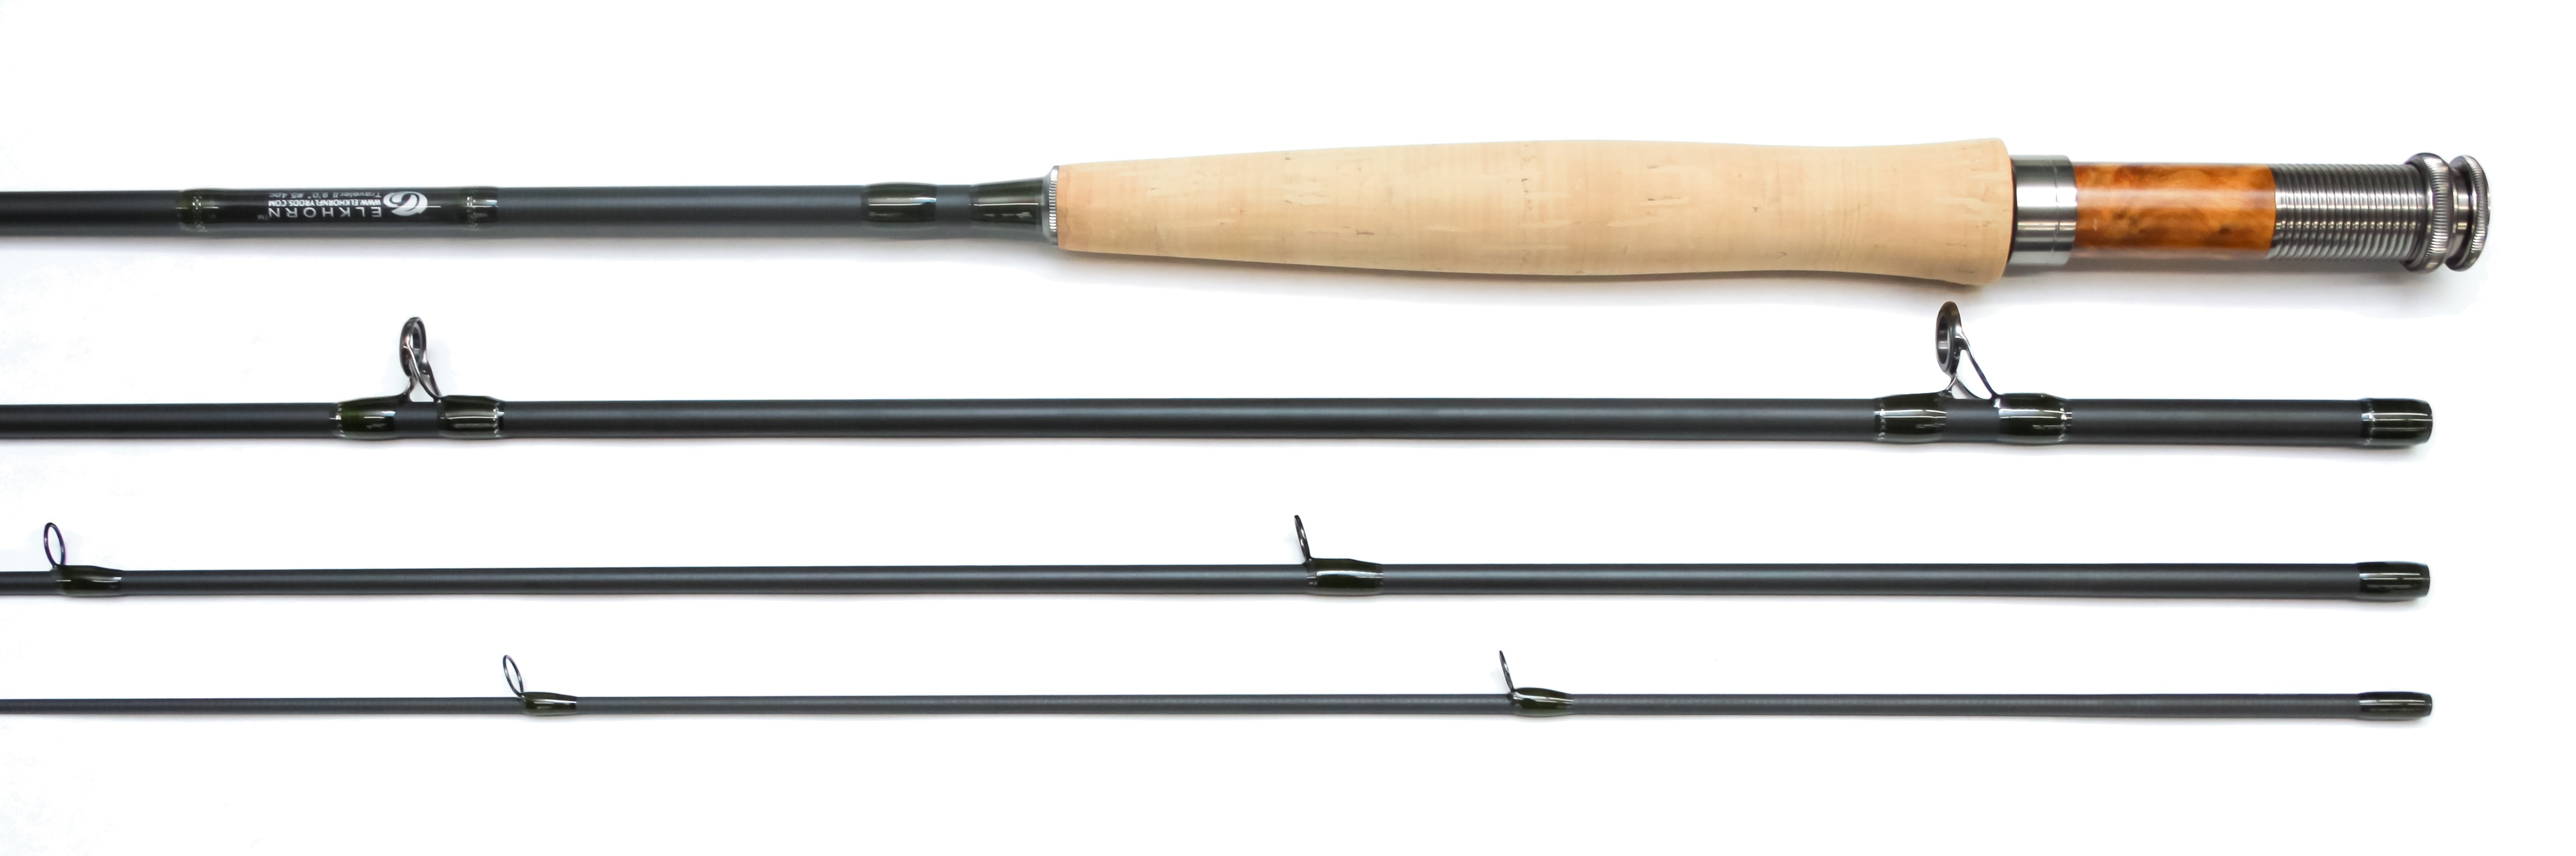 Elkhorn traveler ii series fly rod elkhorn fly rod and reel for Trout fishing rod and reel